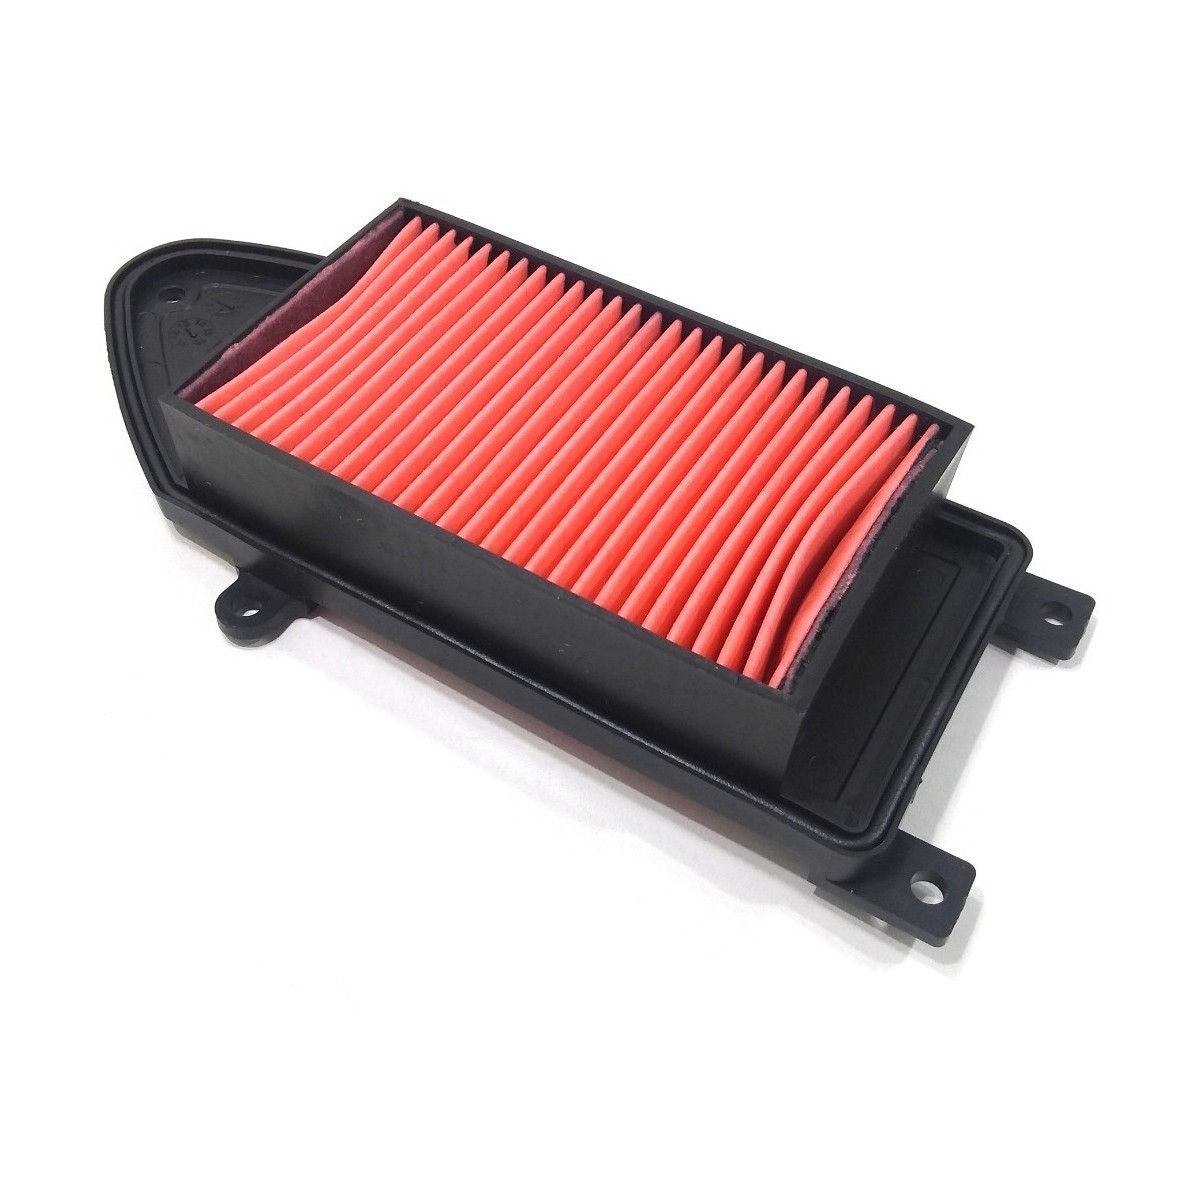 Filtro de Aire Kymco People 125 / 200 Original